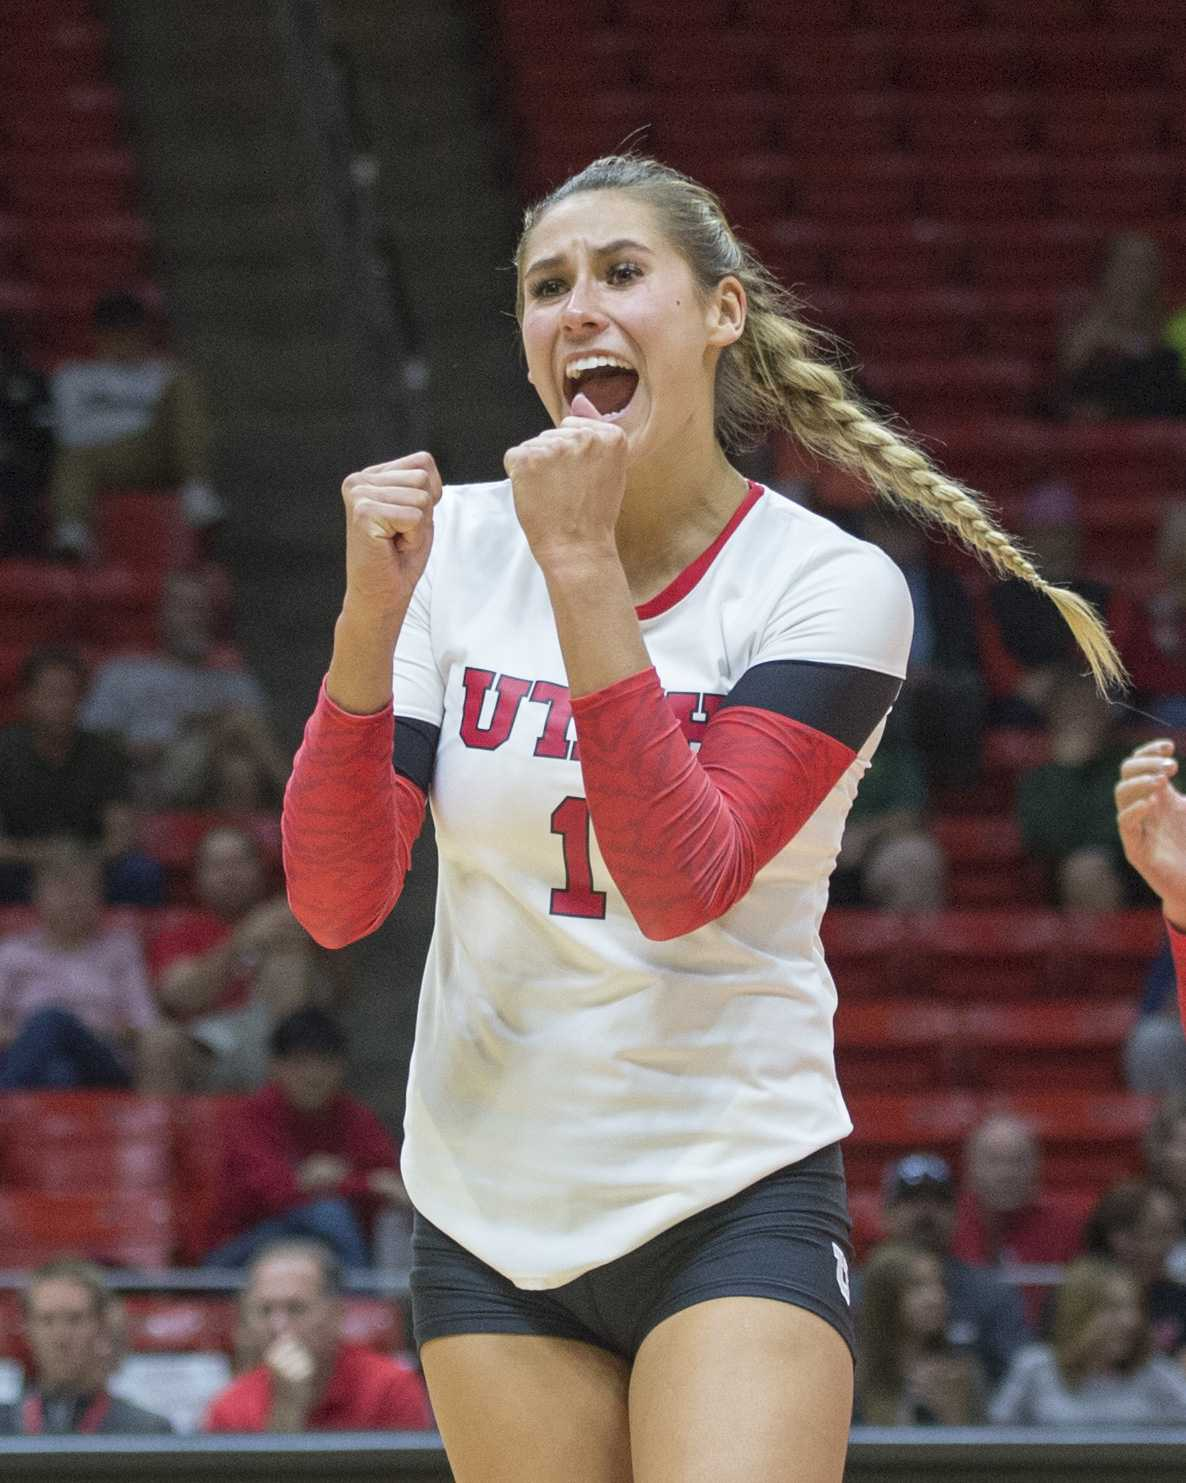 University of Utah Volleyball freshman outside hitter Dani Barton (1) celebrates after her kill in a set of matches vs. The Oregon Ducks at the Huntsman Center in Salt Lake City, UT on Friday, Sept. 29, 2017  (Photo by Kiffer Creveling | The Daily Utah Chronicle)